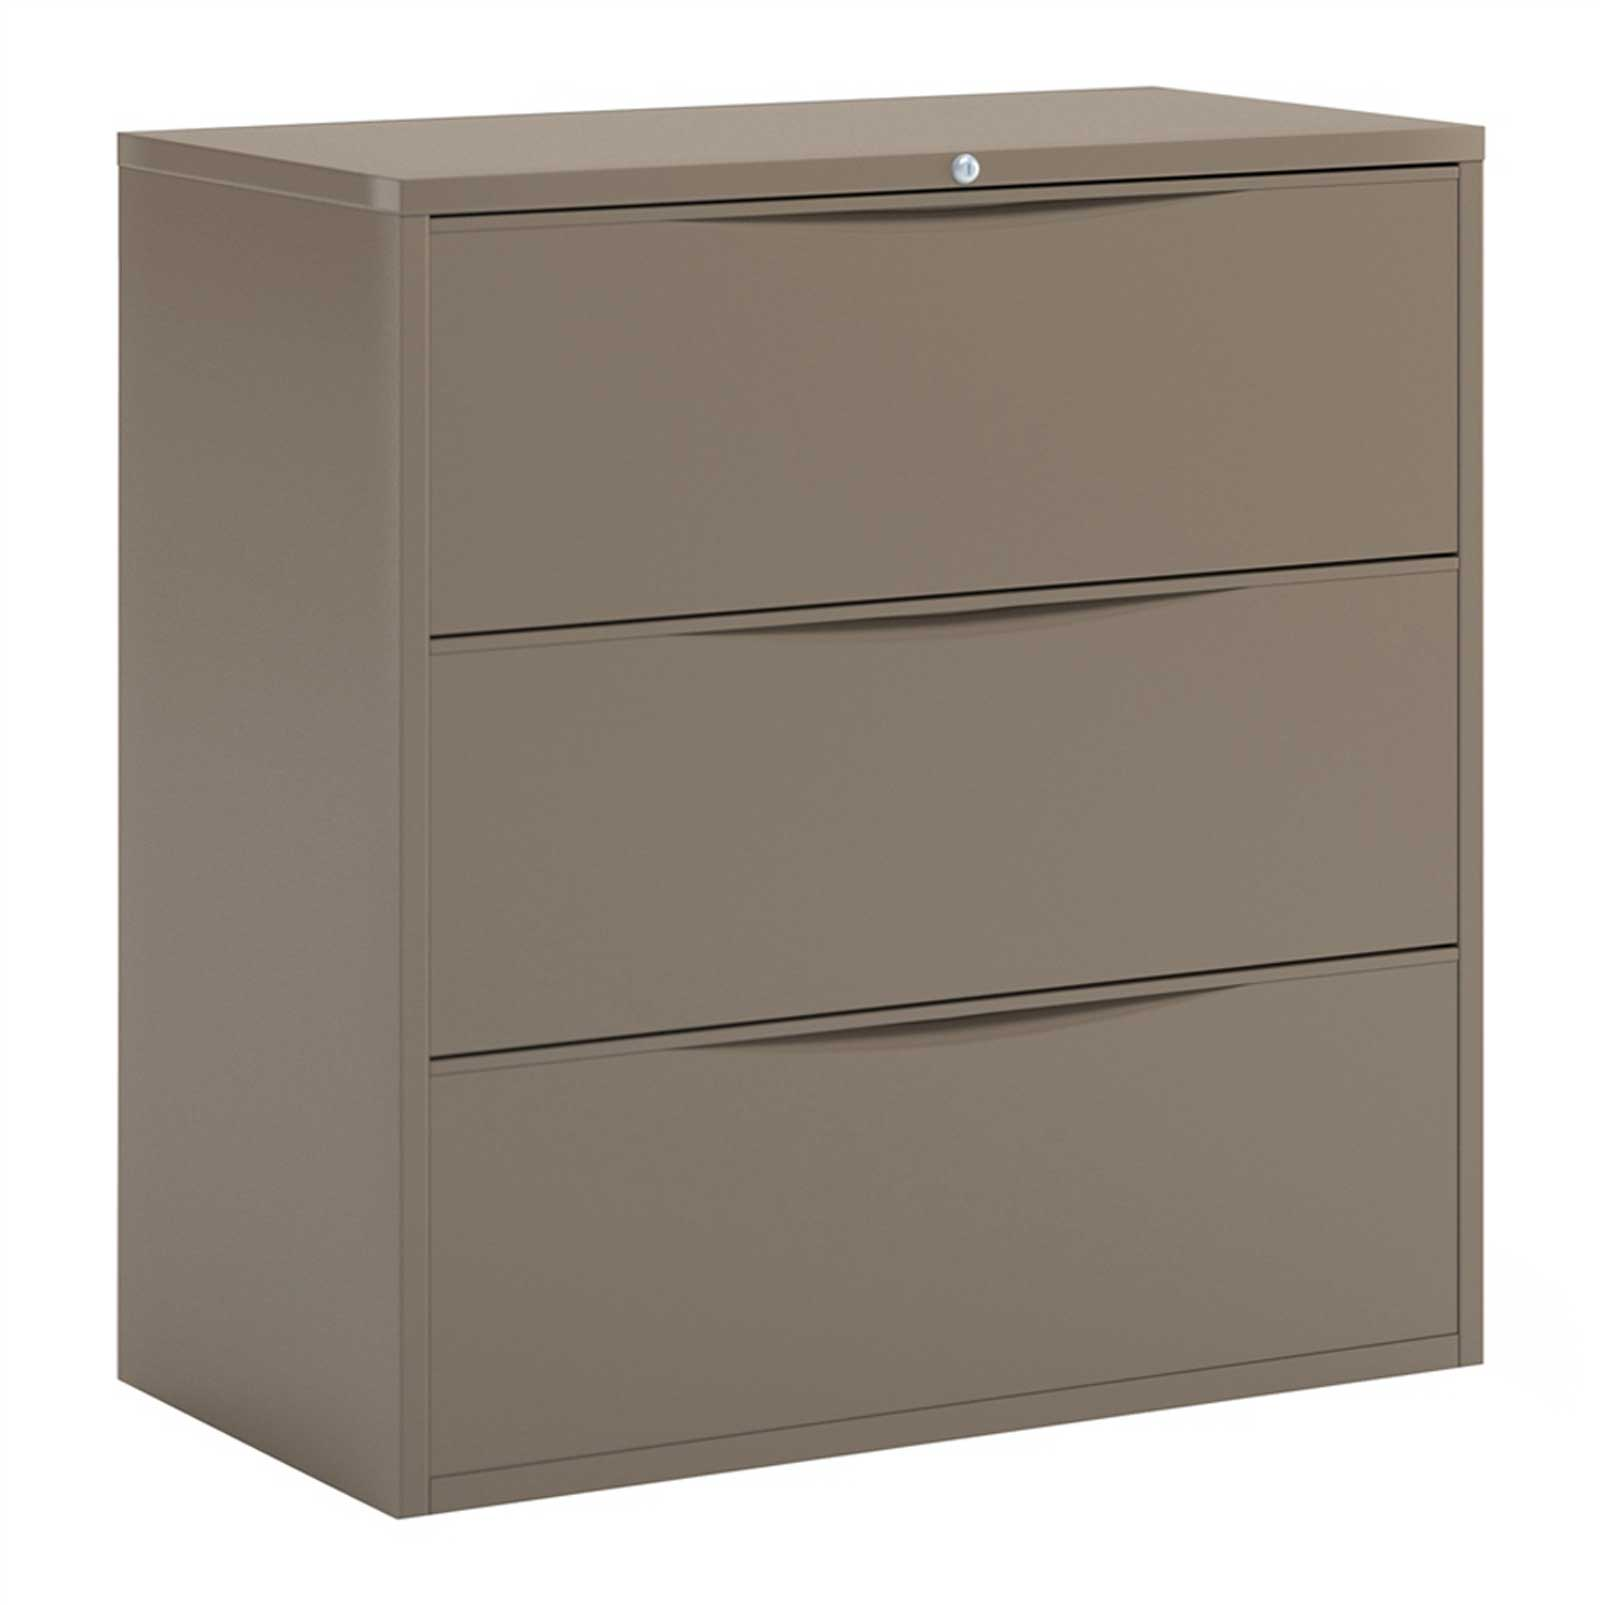 Mayline CSII Desert Sage Horizontal File Cabinets with 3 Drawers